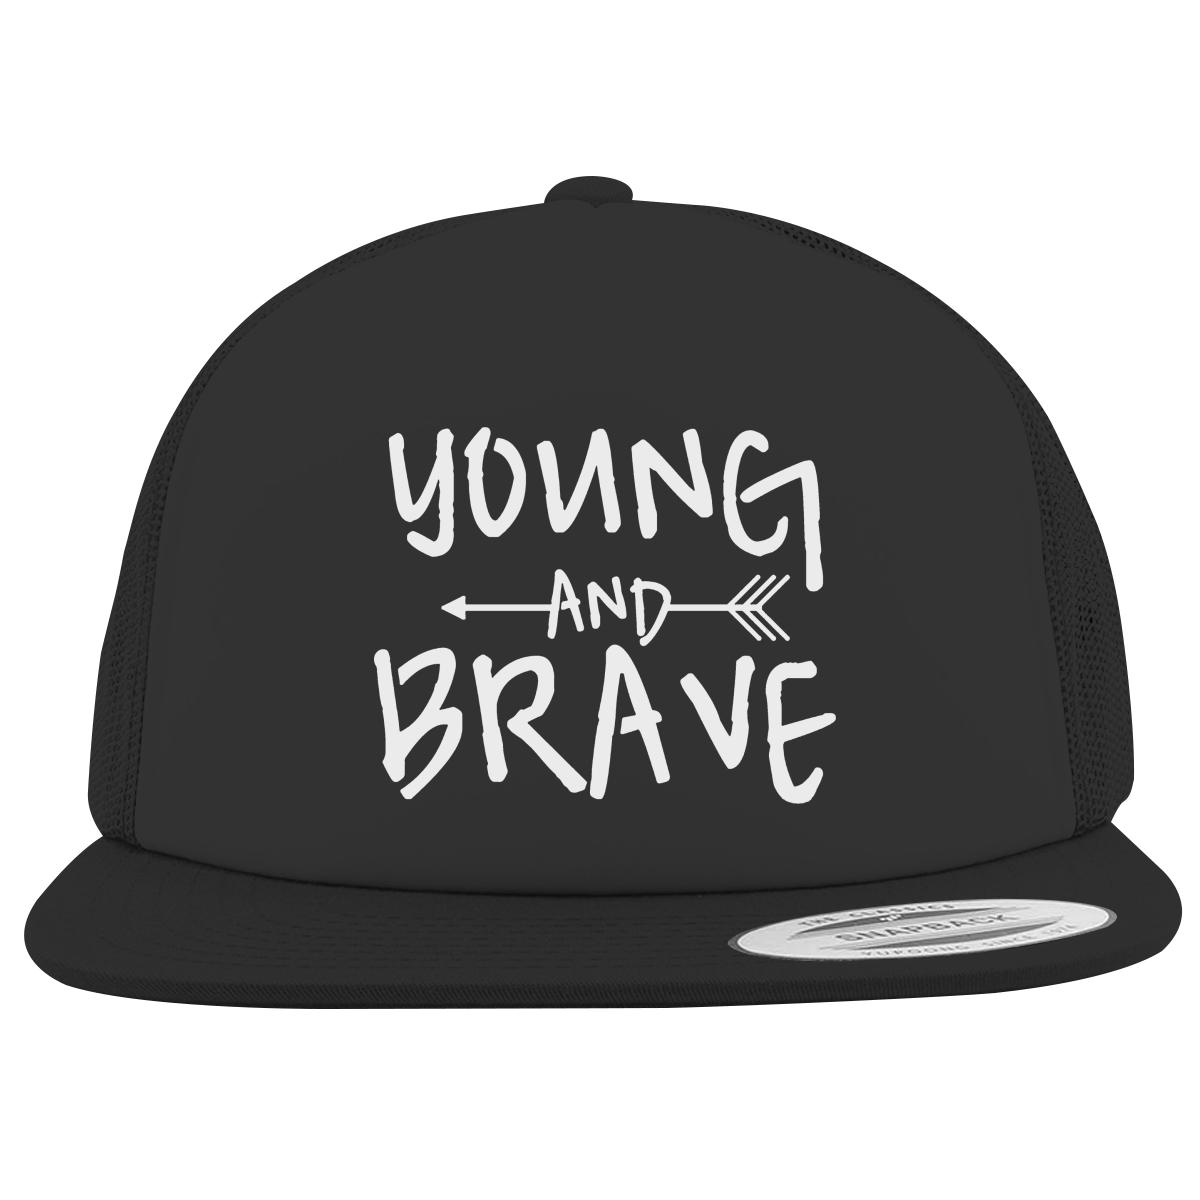 c17f54c28d5 YOUNG AND BRAVE - WHITE Foam Trucker Hat